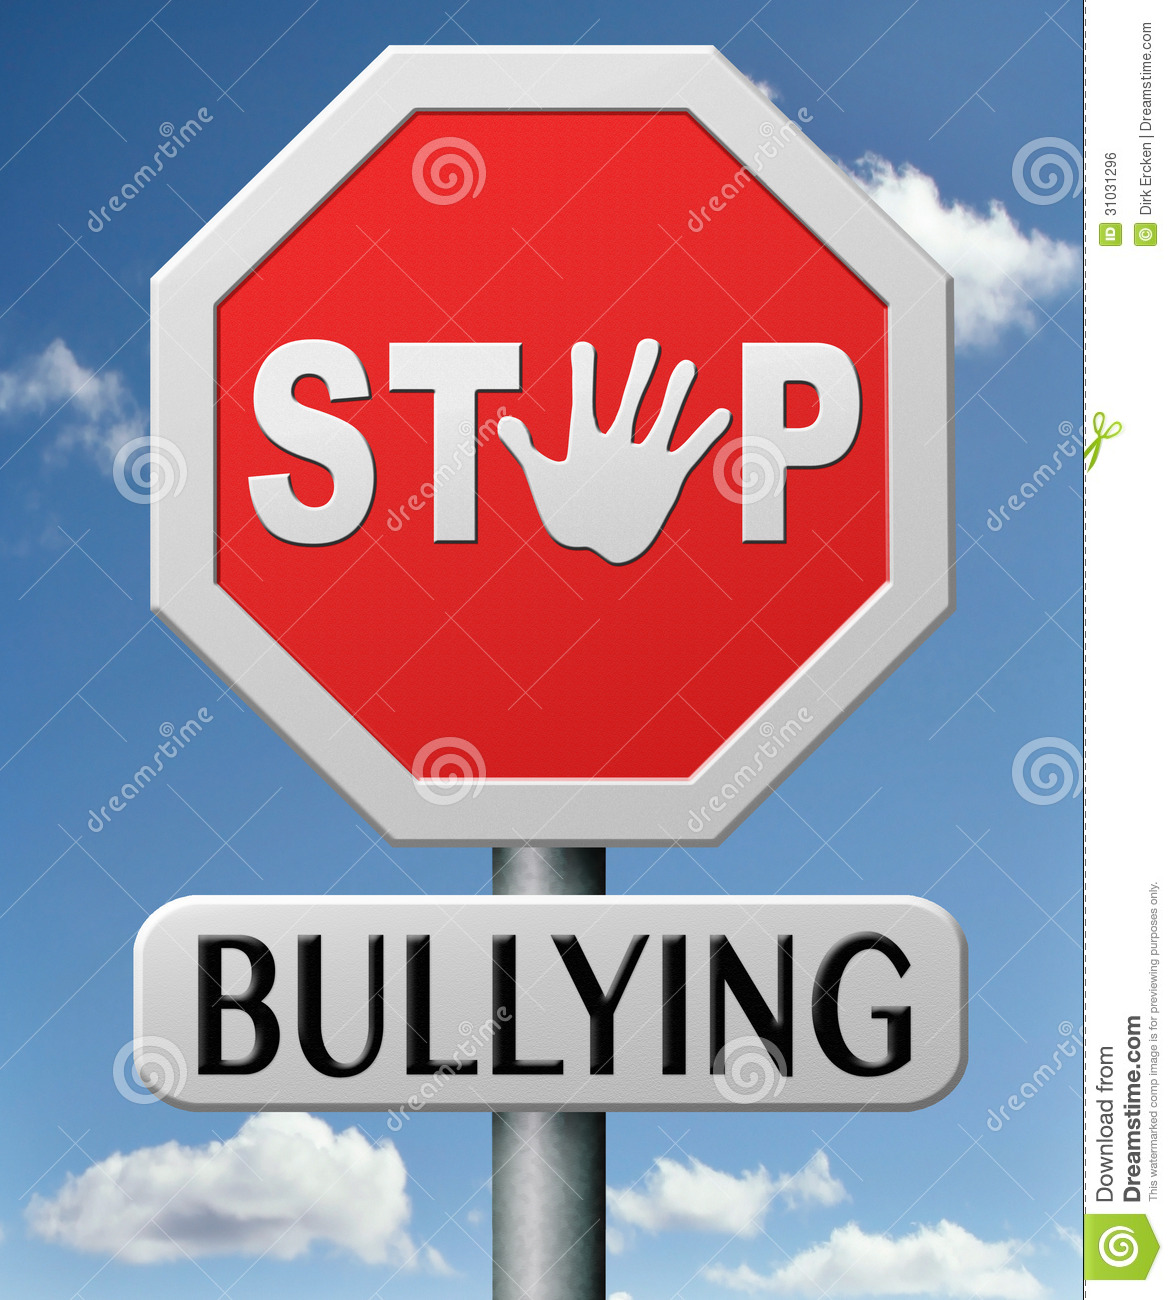 Free School Clipart Bullying Stop Bullying No School Bully Royalty